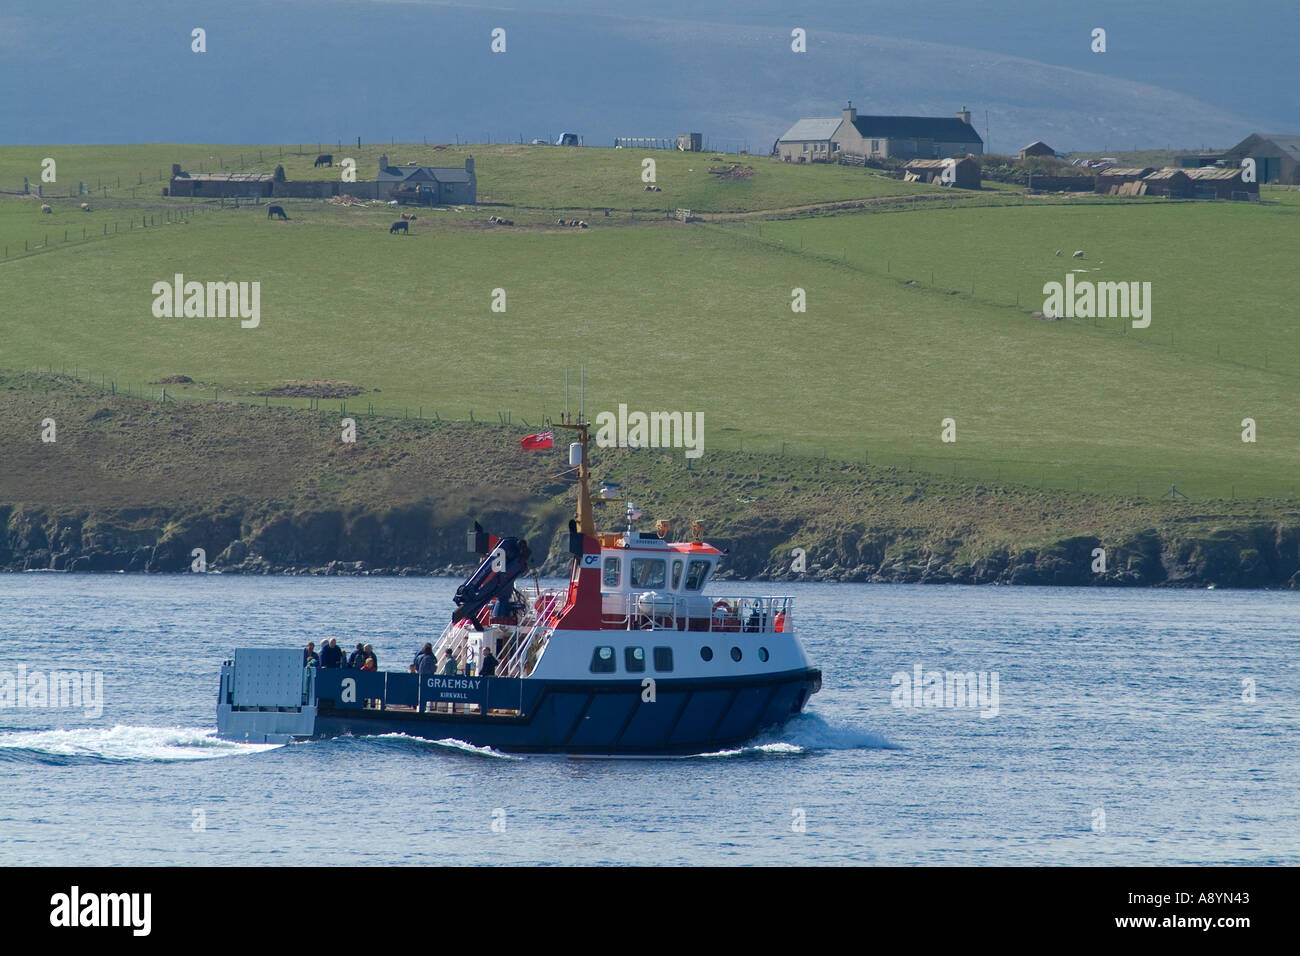 dh Graemsay island HOY SOUND ORKNEY Orkney Ferries MV Graemsay sailing passed shore ferry scotland islands boat Stock Photo